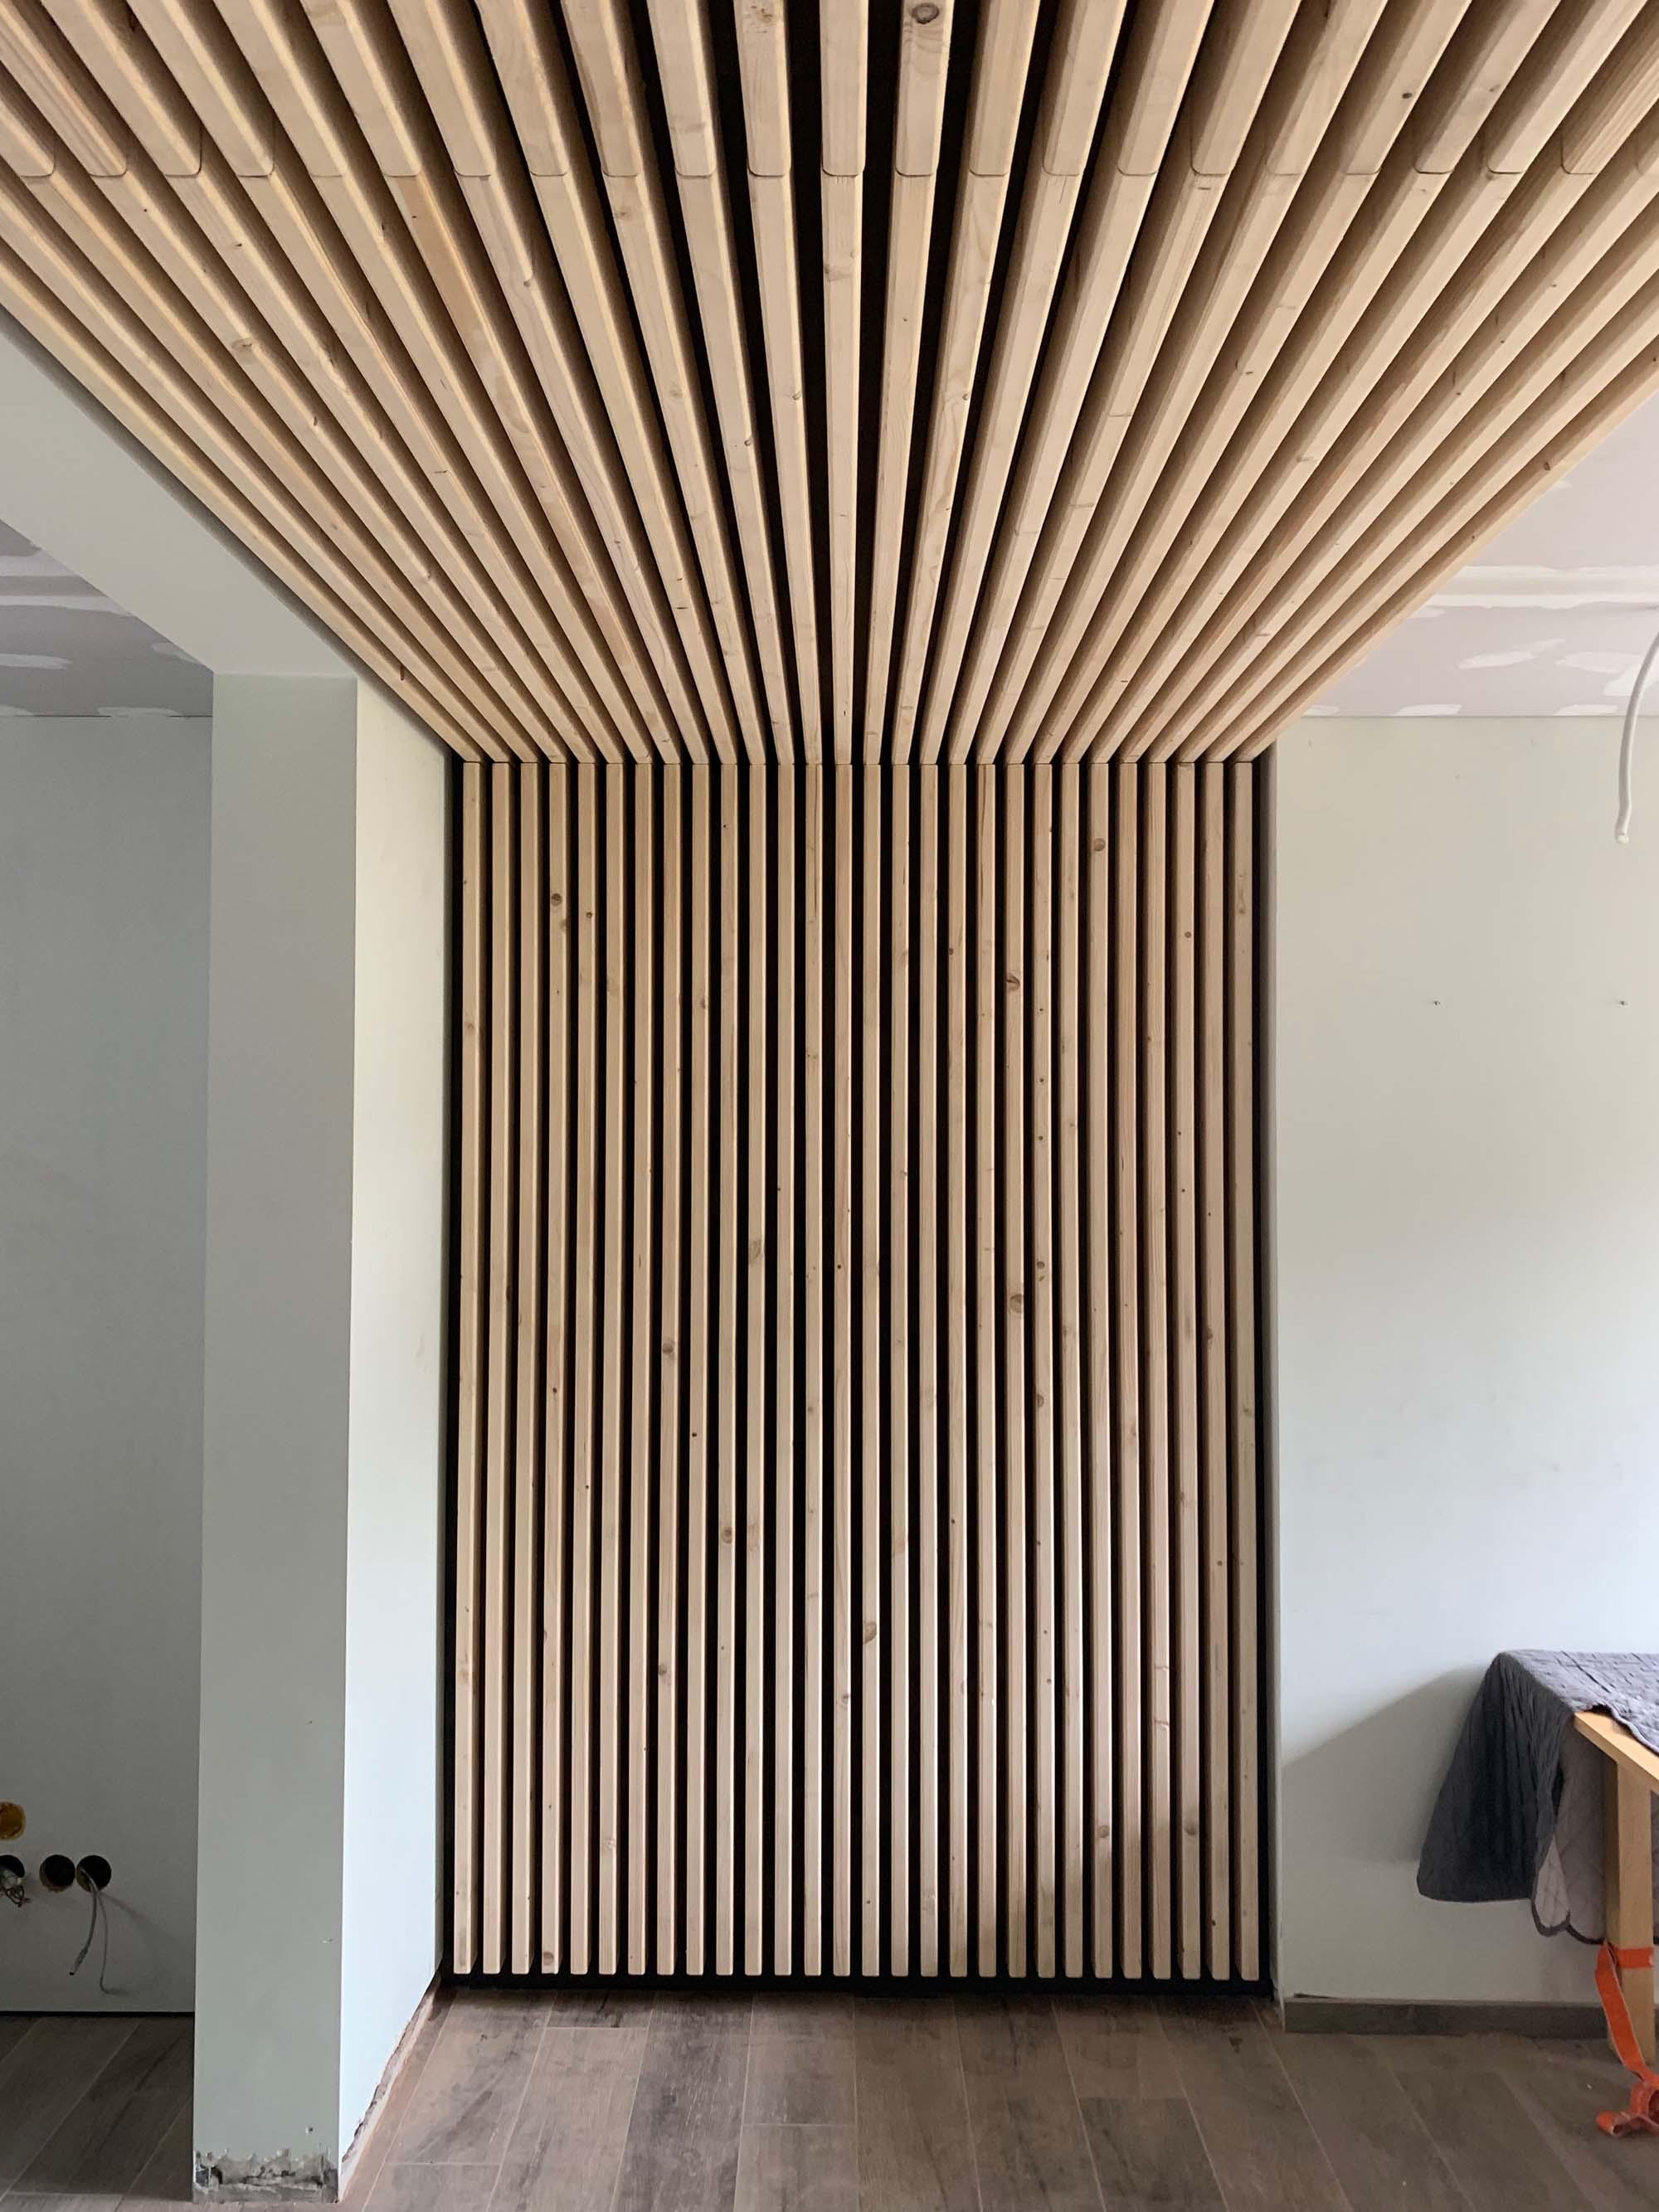 De Vuyst Interieur Projects